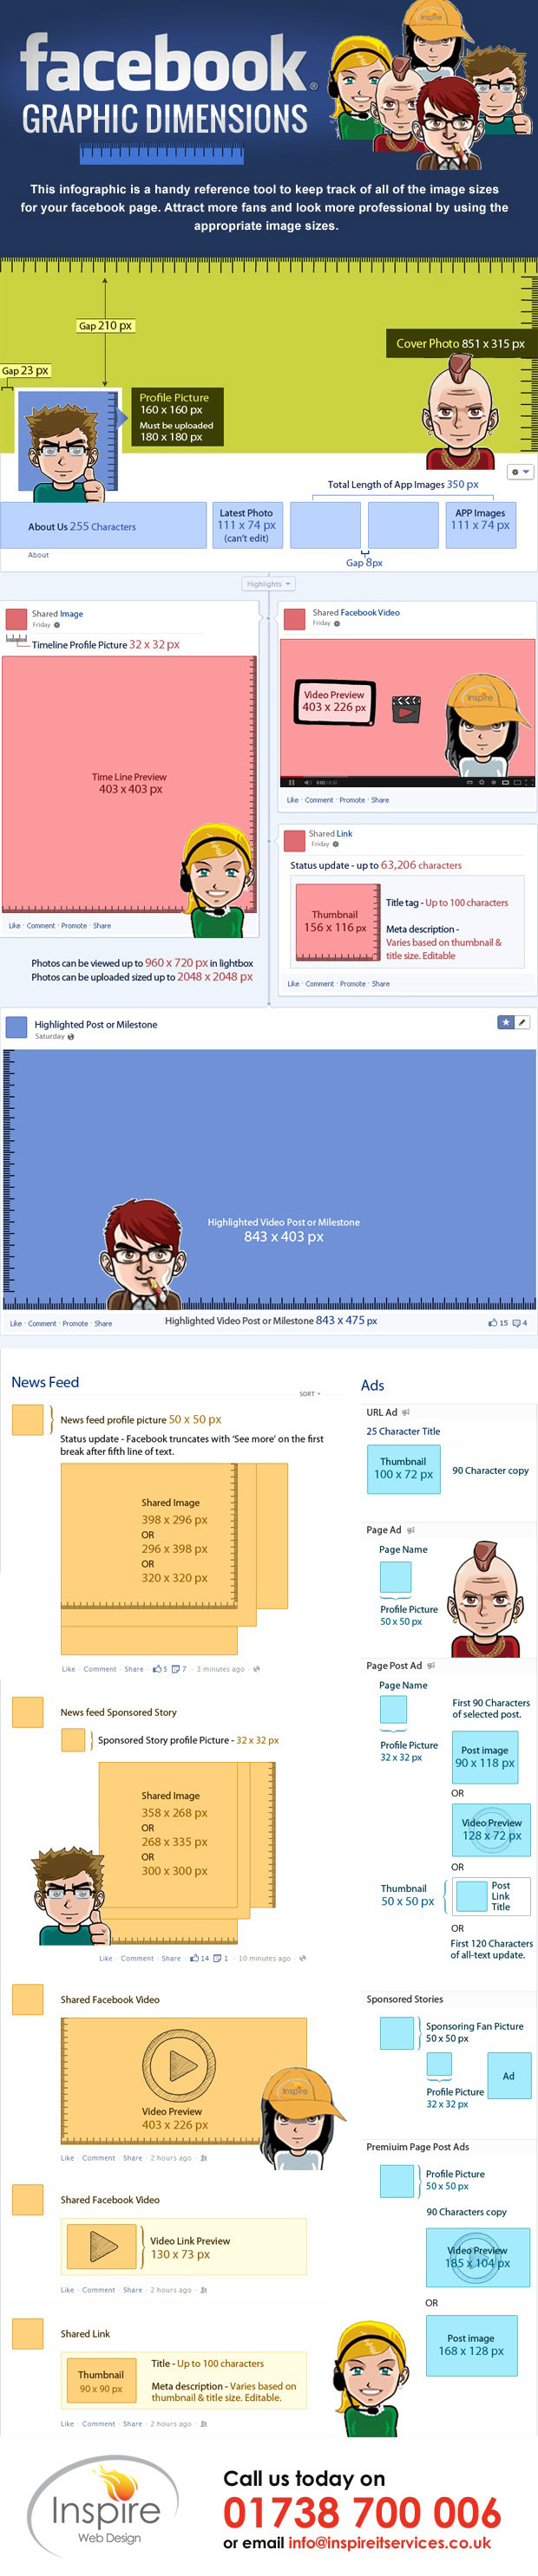 This Info graphic is a handy reference tool to keep track of all the image sizes for your Facebook page.